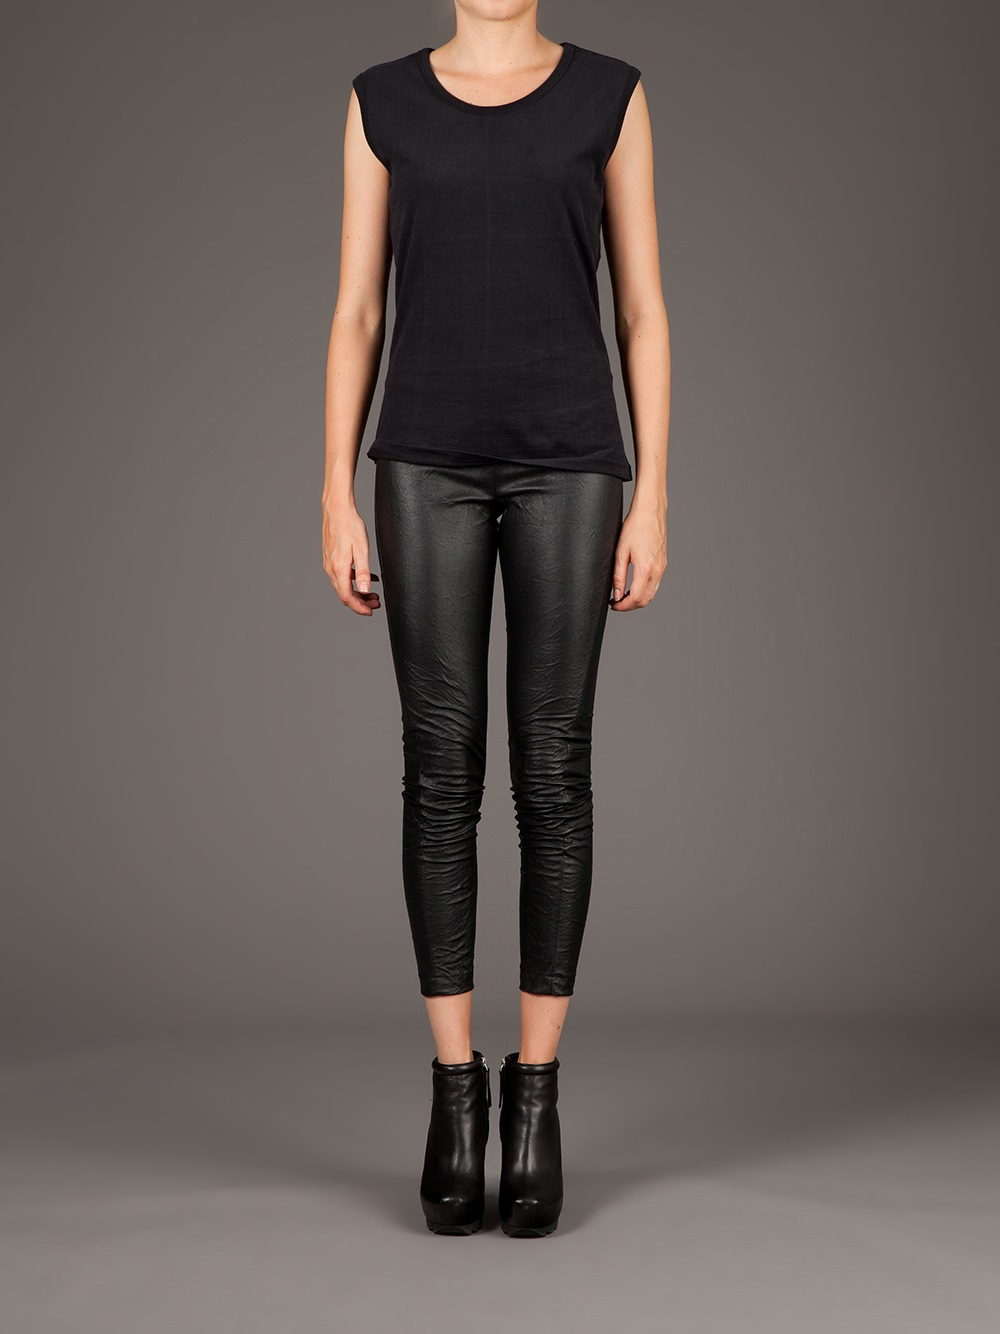 Bluelans Sexy Women Splicing Lace Faux Leather Leggings High Waist Skinny Stretch Pants. Sold by Bluelans. $ Gregg Homme Crave Faux Leather Legging. Sold by His/Her eternal-sv.tk $ Gregg Homme Crave Faux Leather Legging. .